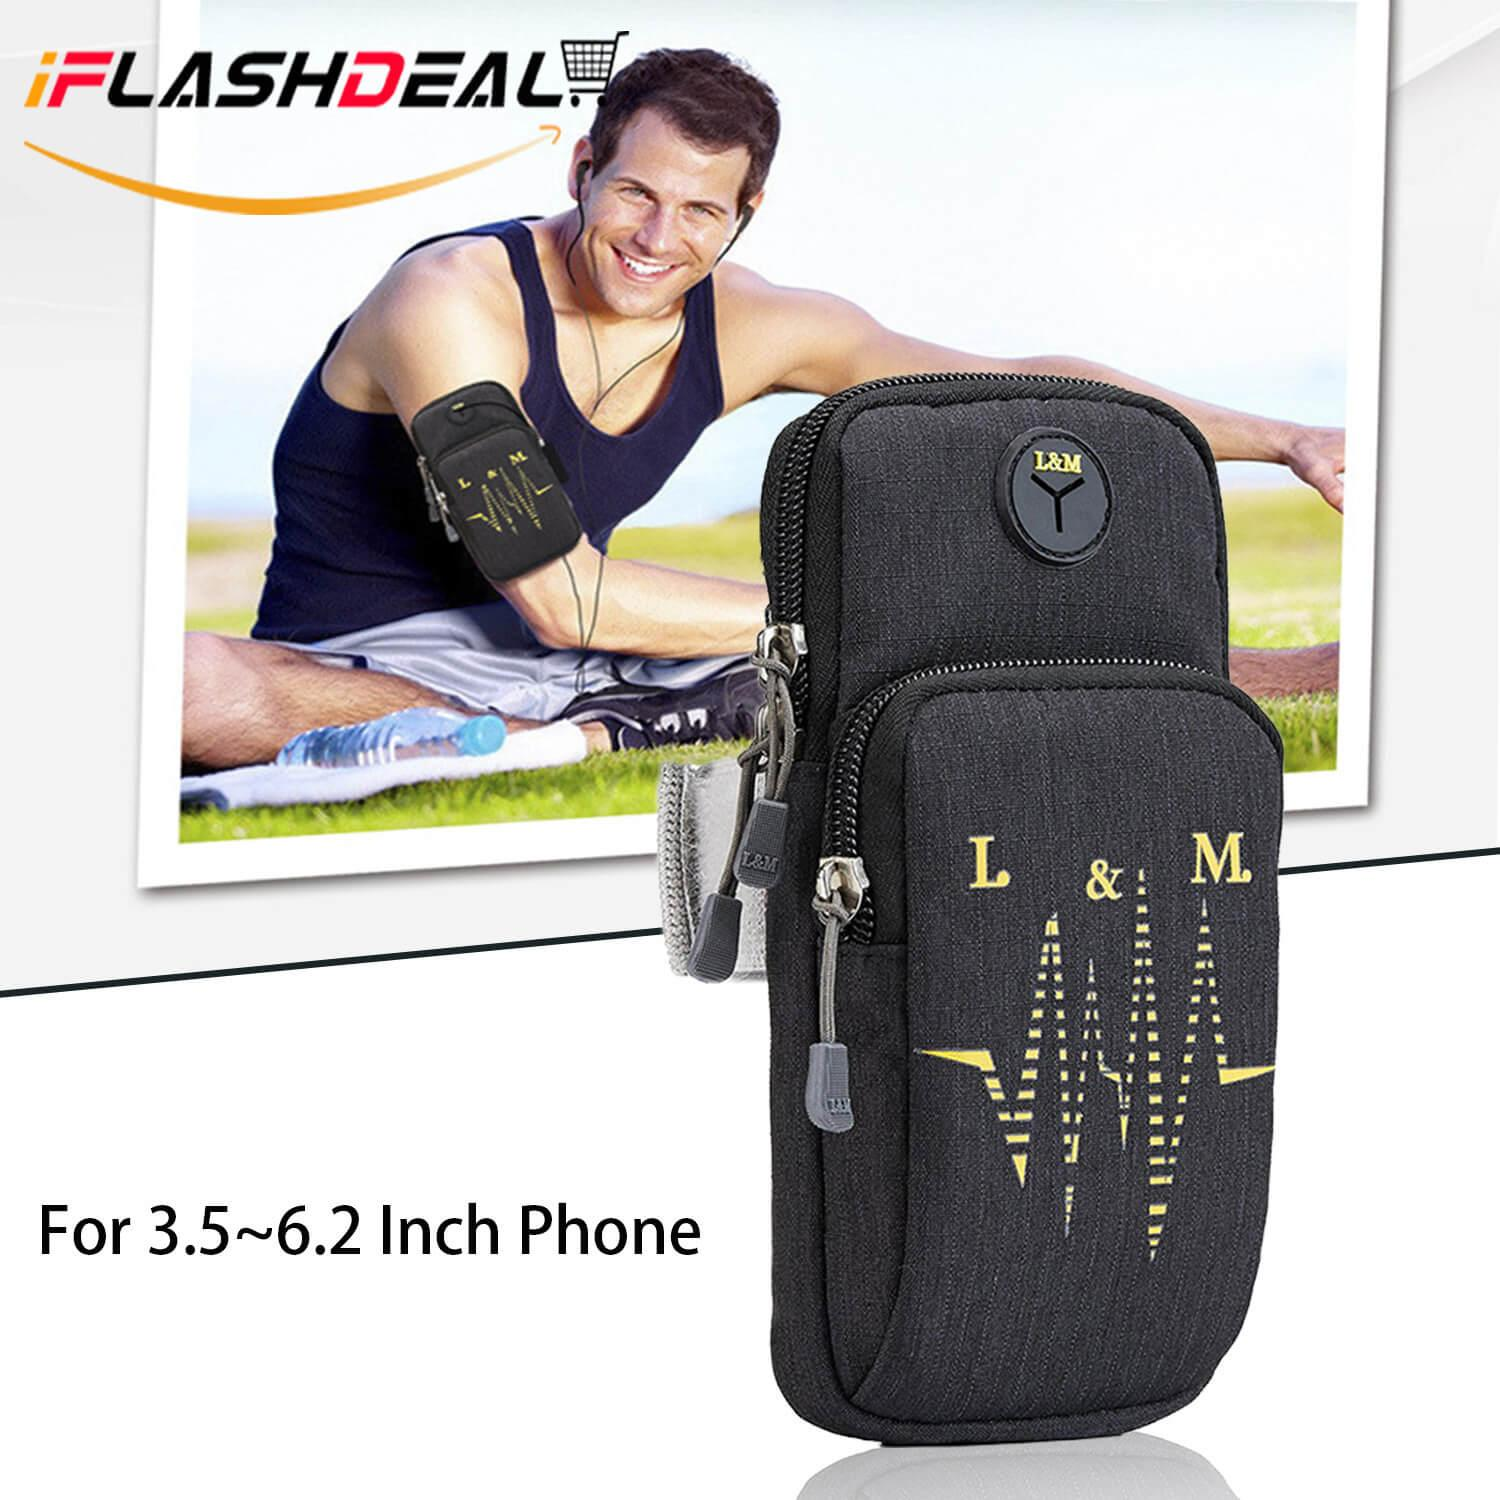 iFlashDeal Phone Arm Bands Sport Armband Mobile Phone Running Workout Outdoor Exercise Fitness Arm Bag Waist